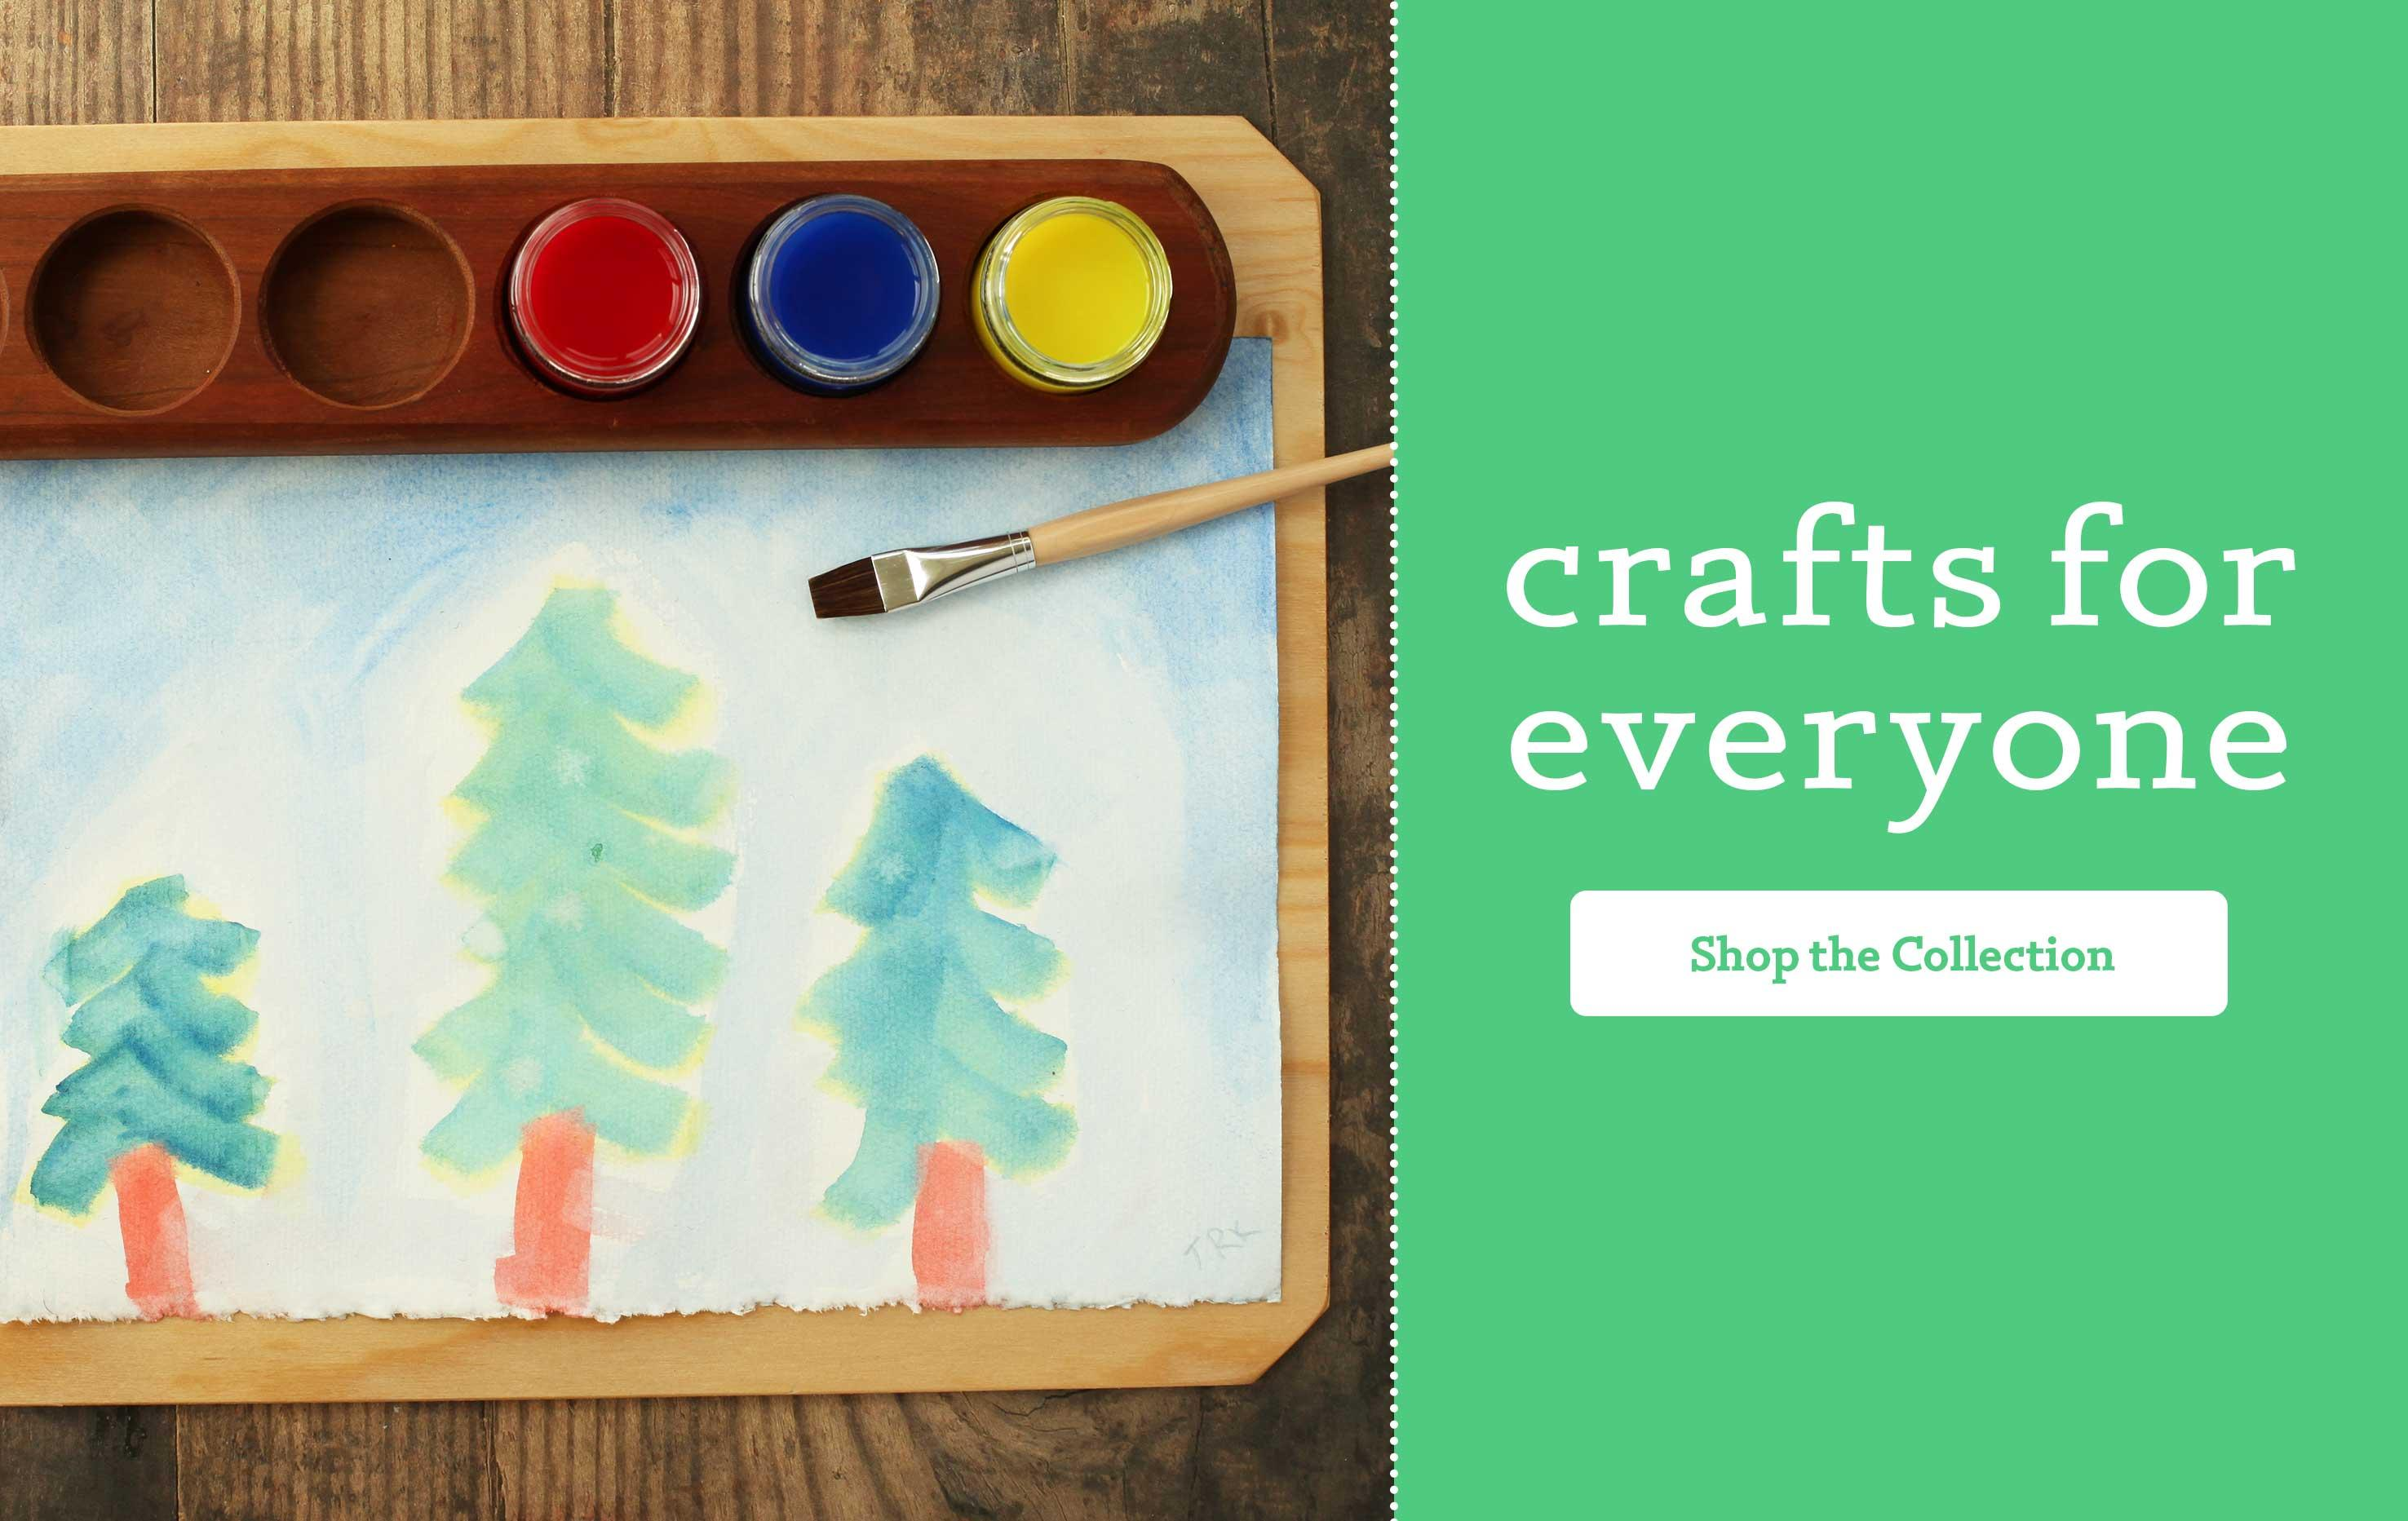 crafts for everyone